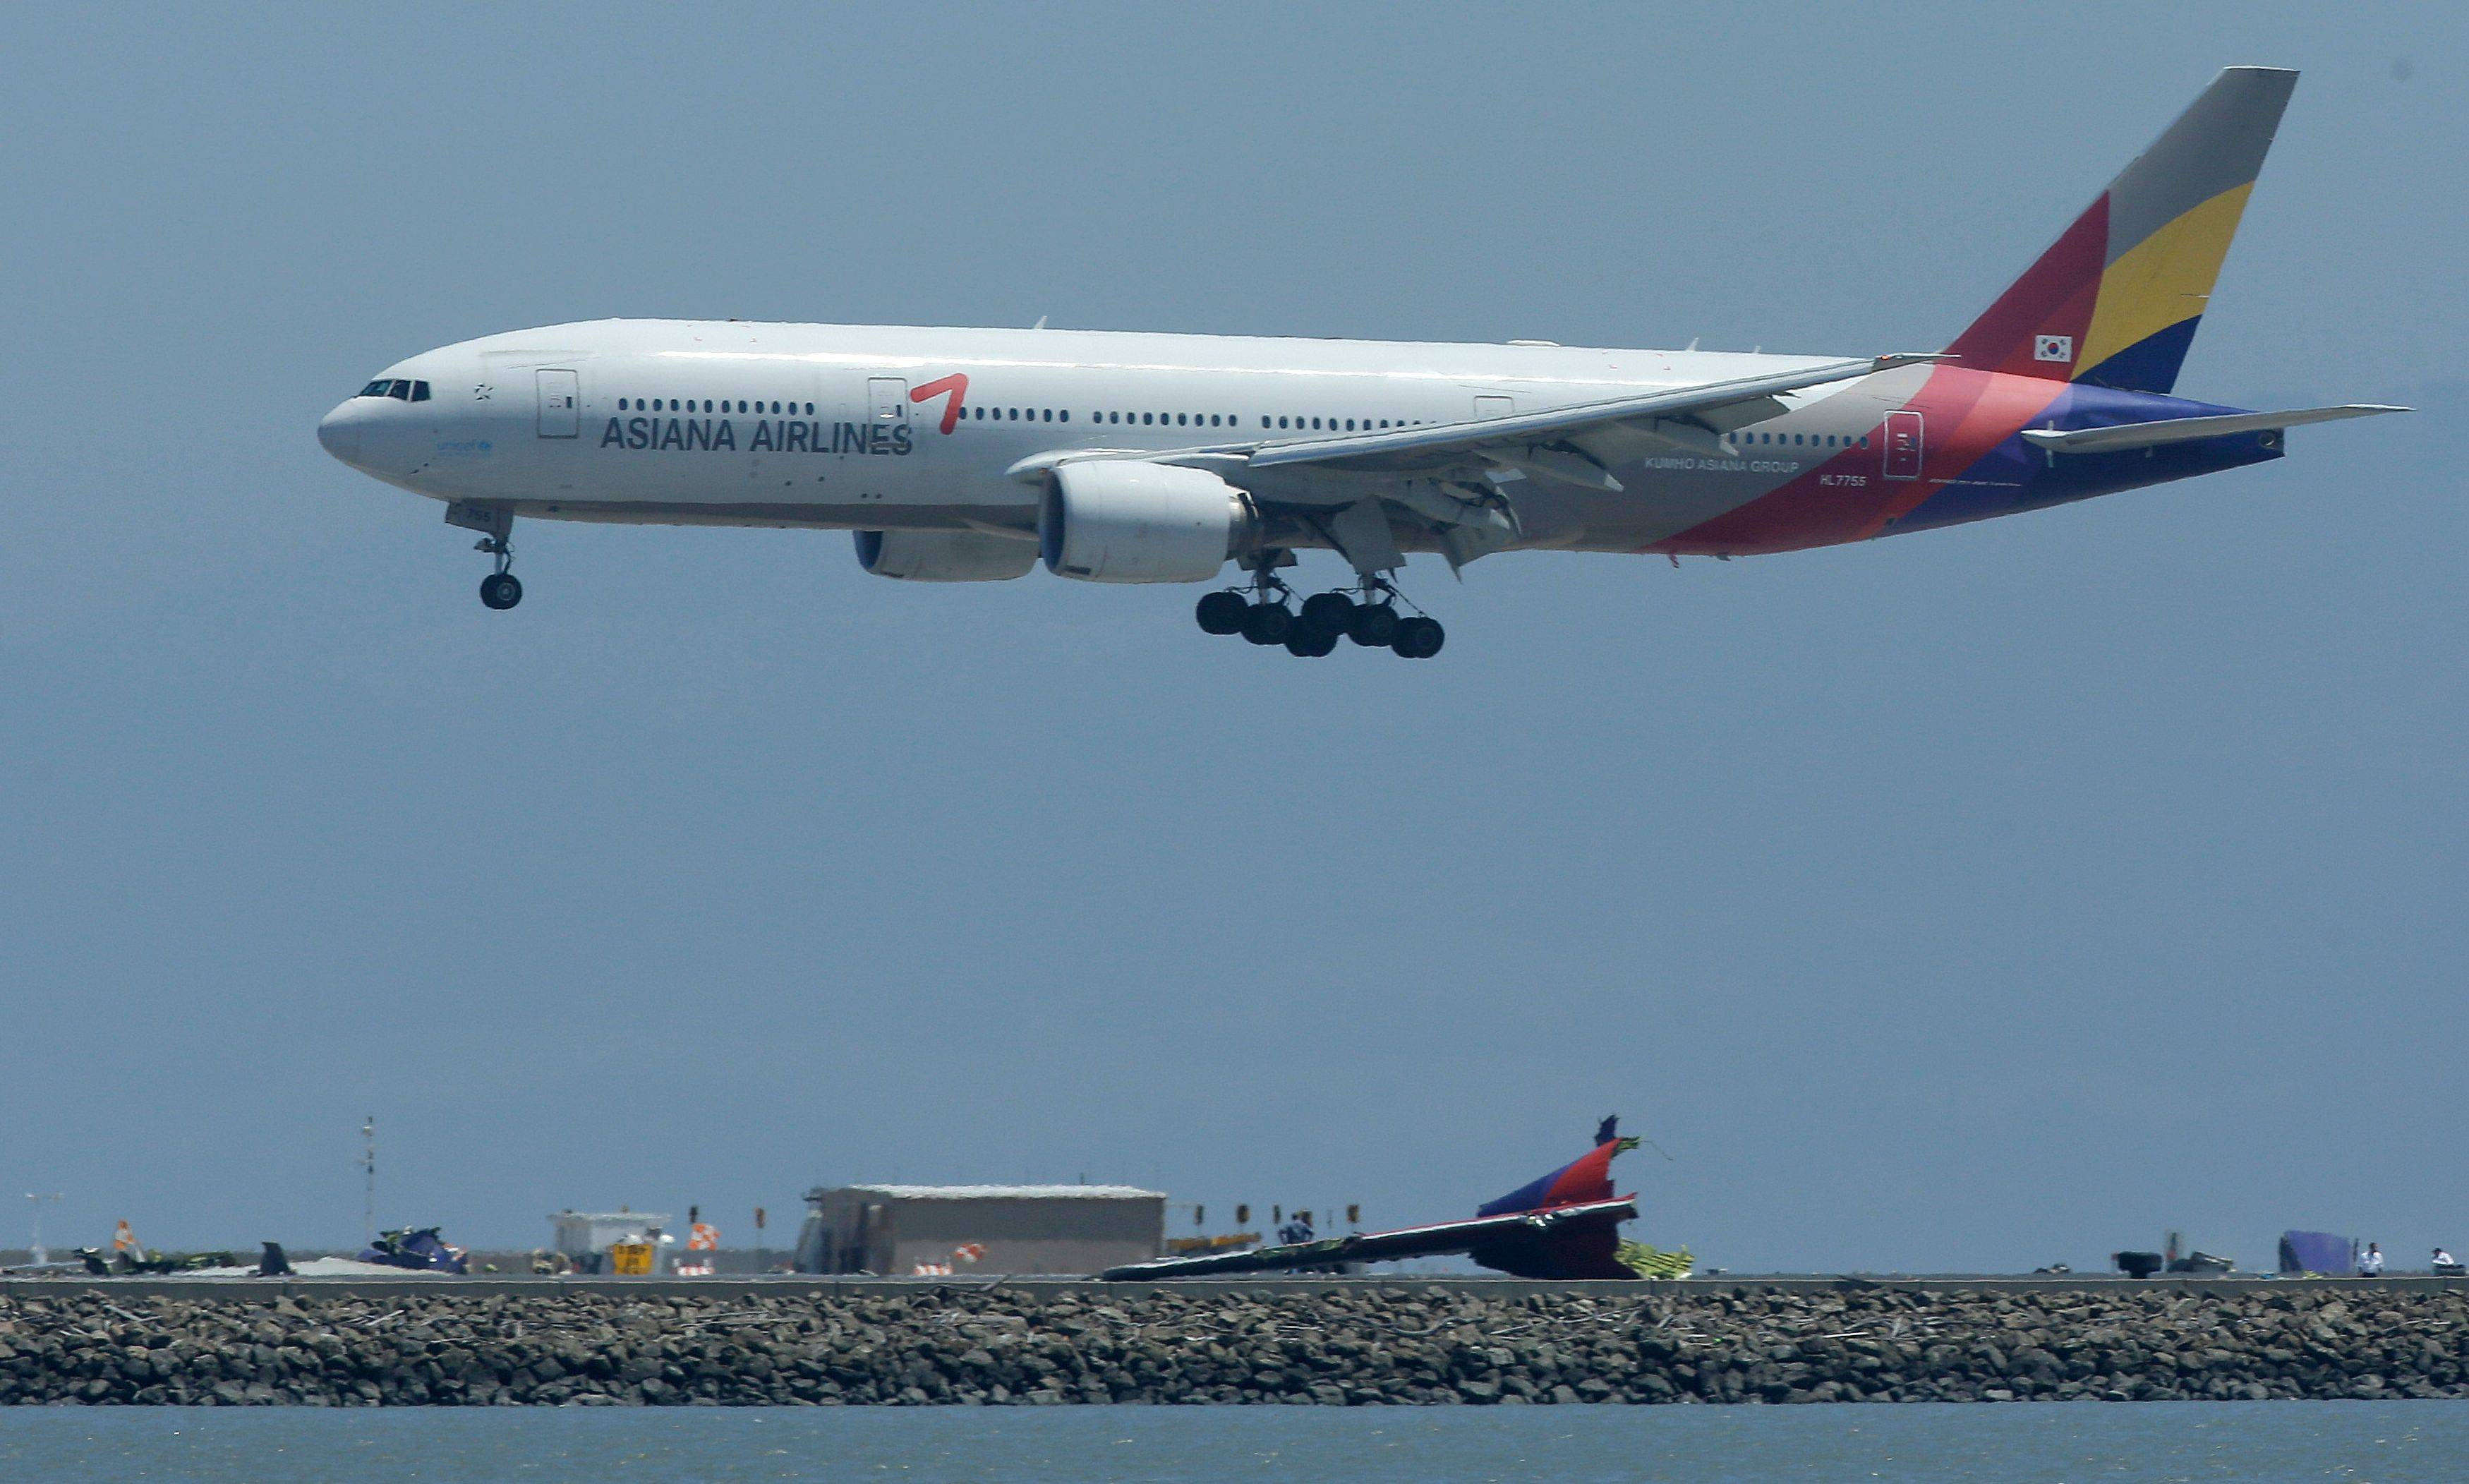 Tuesday�s Asiana Flight 214 comes in for a landing over the wreckage of Saturday�s Asiana Flight 214 at San Francisco International Airport.